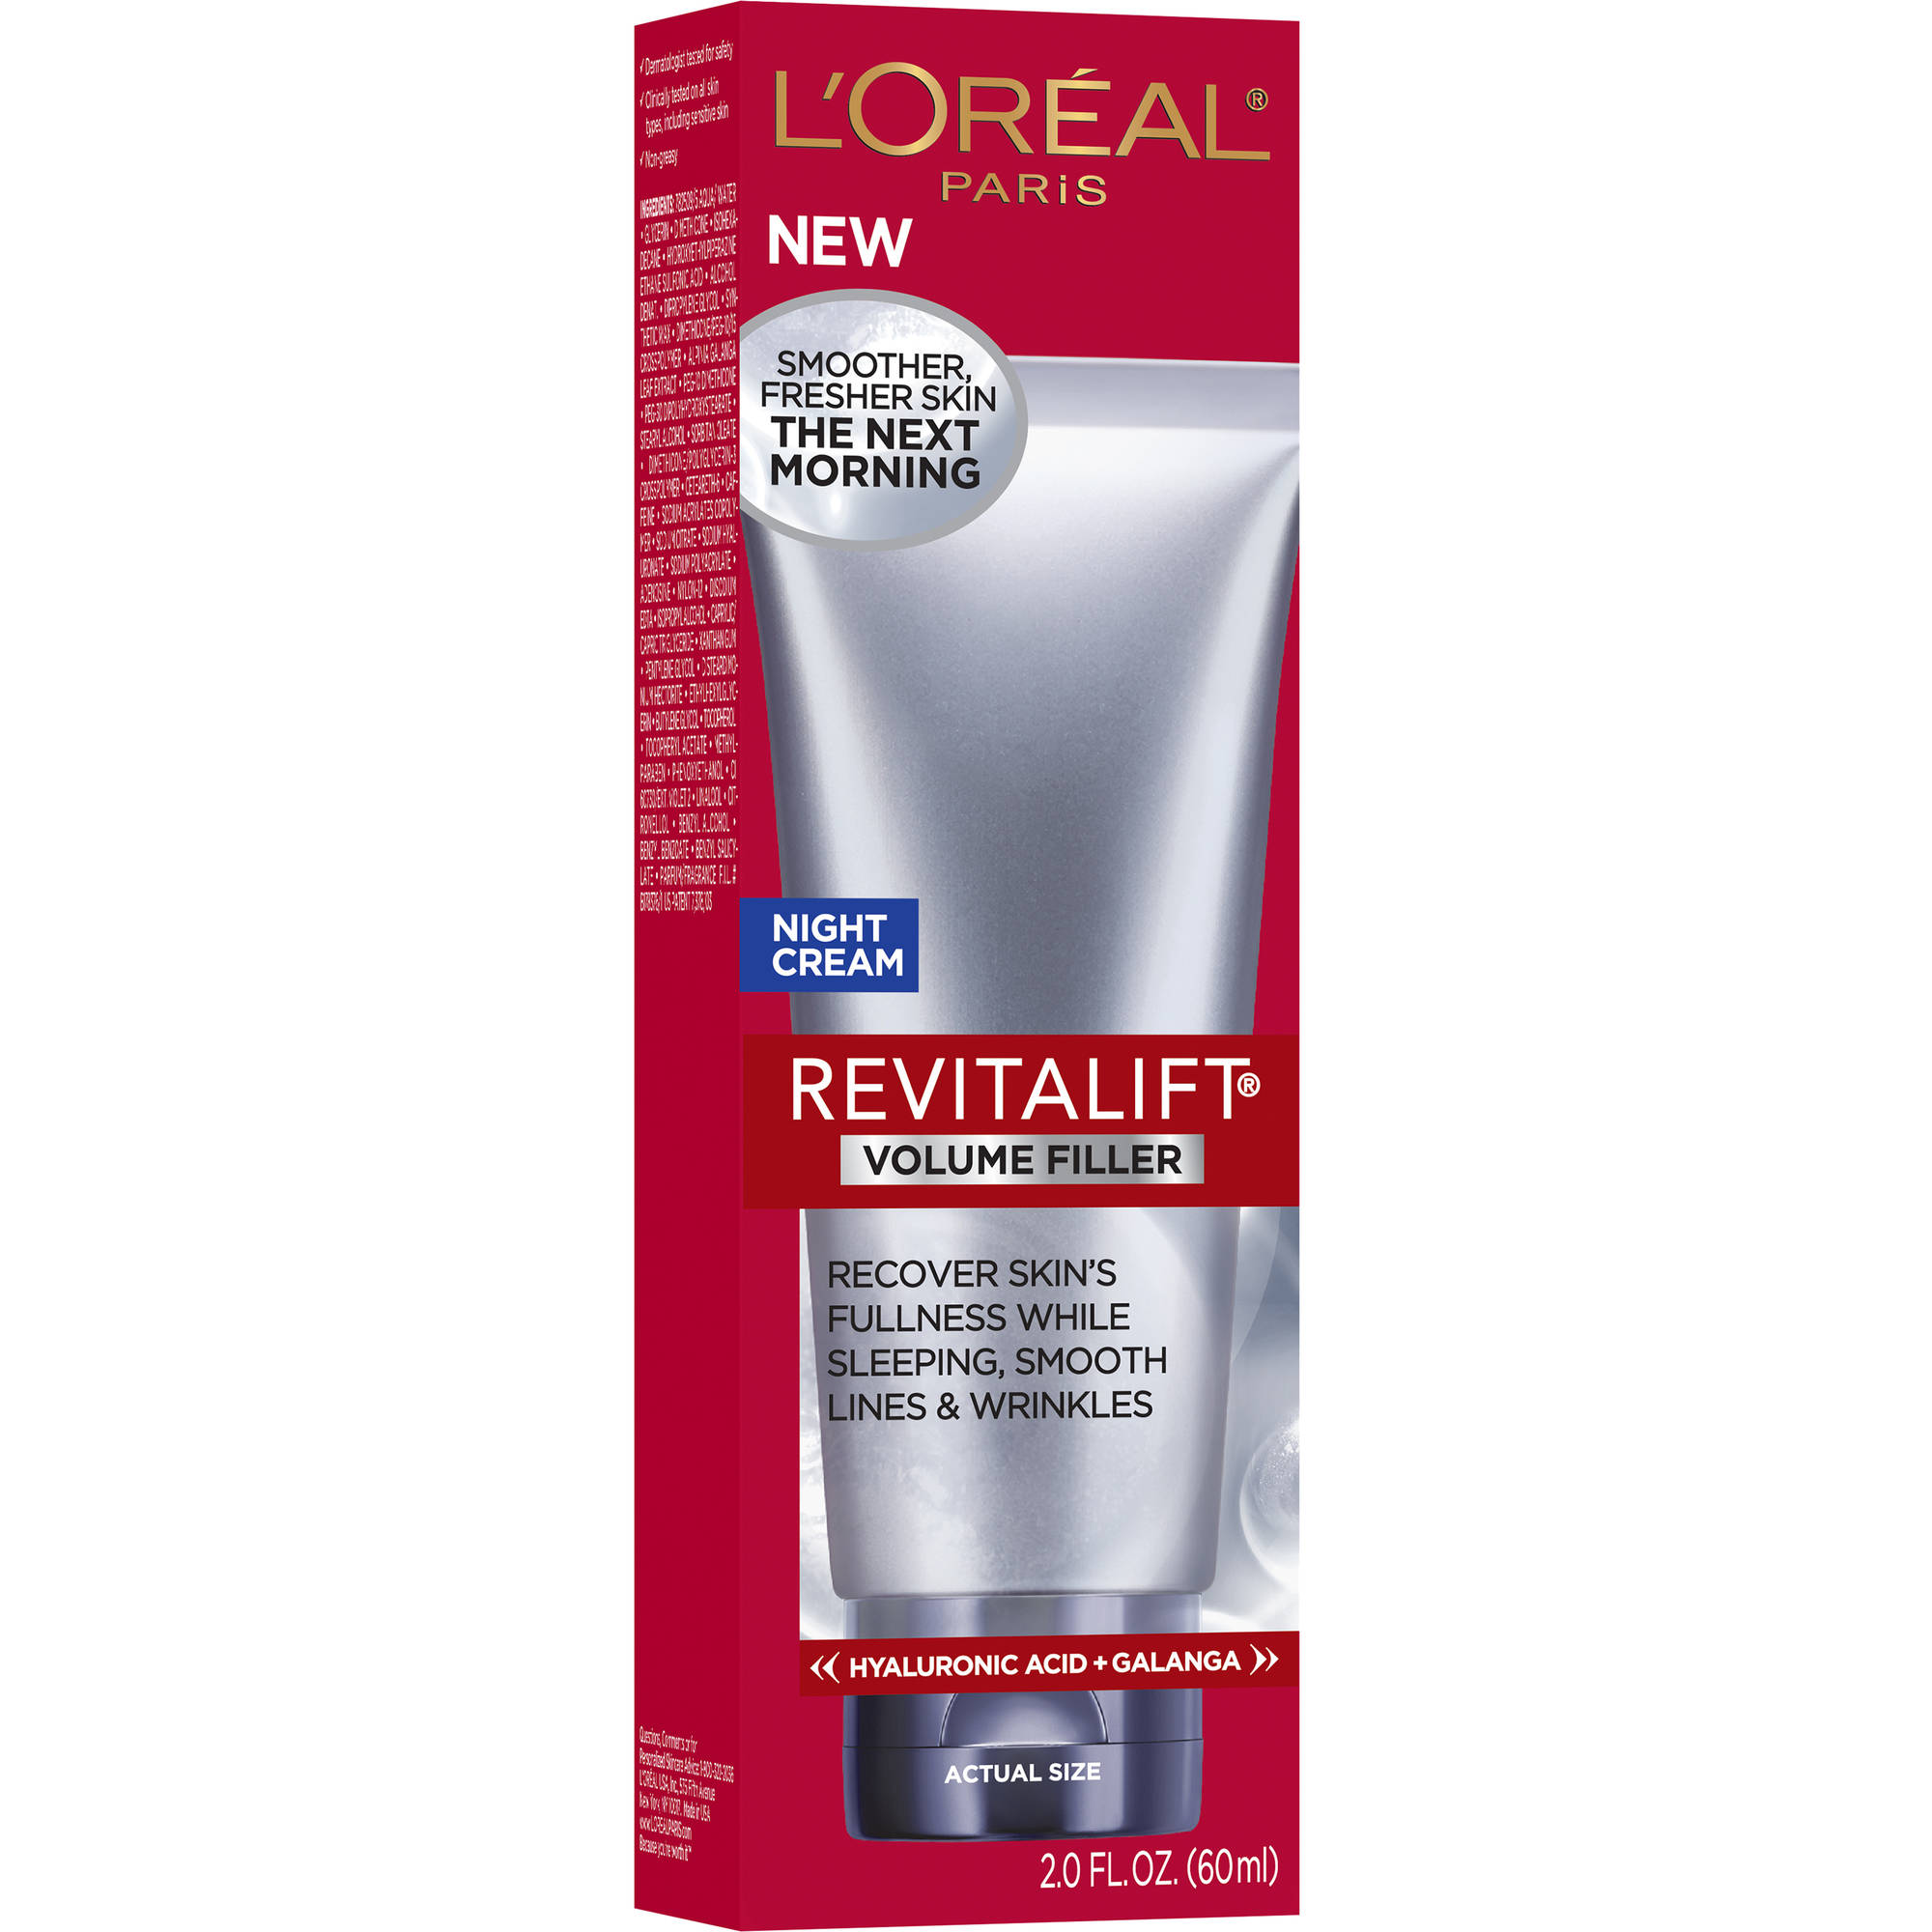 L'Oreal Paris RevitaLift Volume Filler Night Cream, 2.0 fl oz